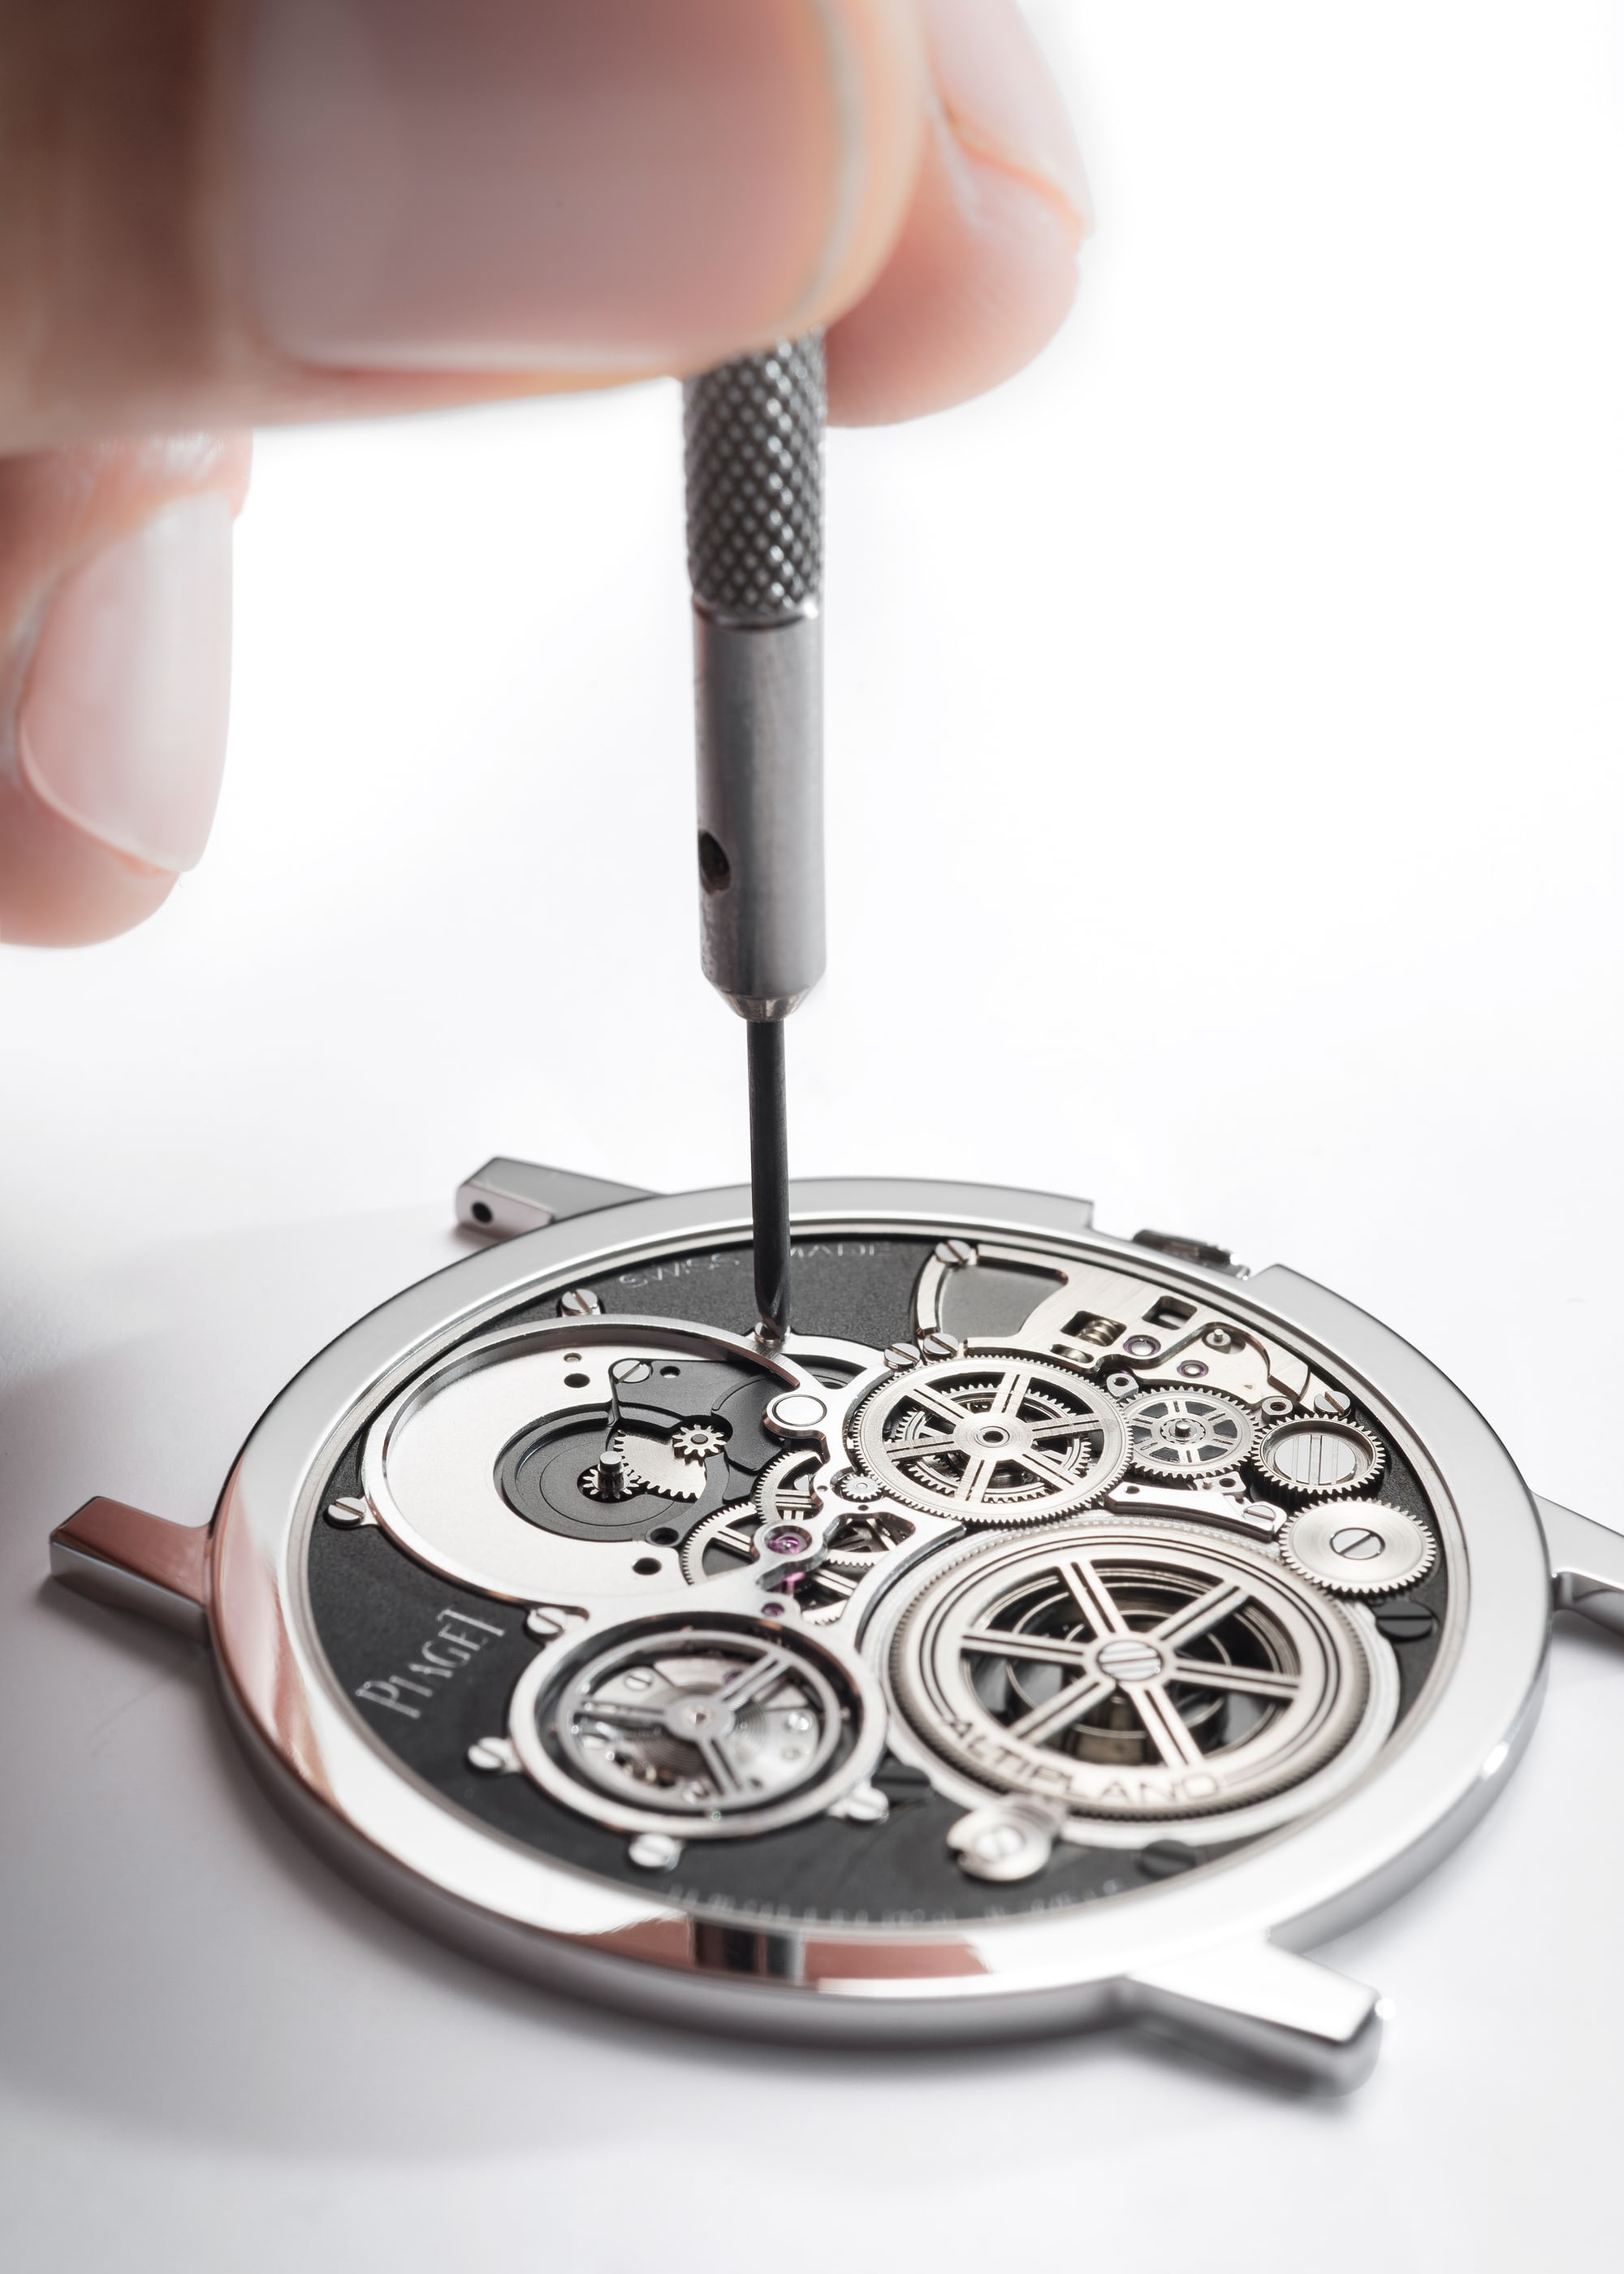 <p>Assembling an ultra-thin watch requires managing extremely minute clearances.</p>